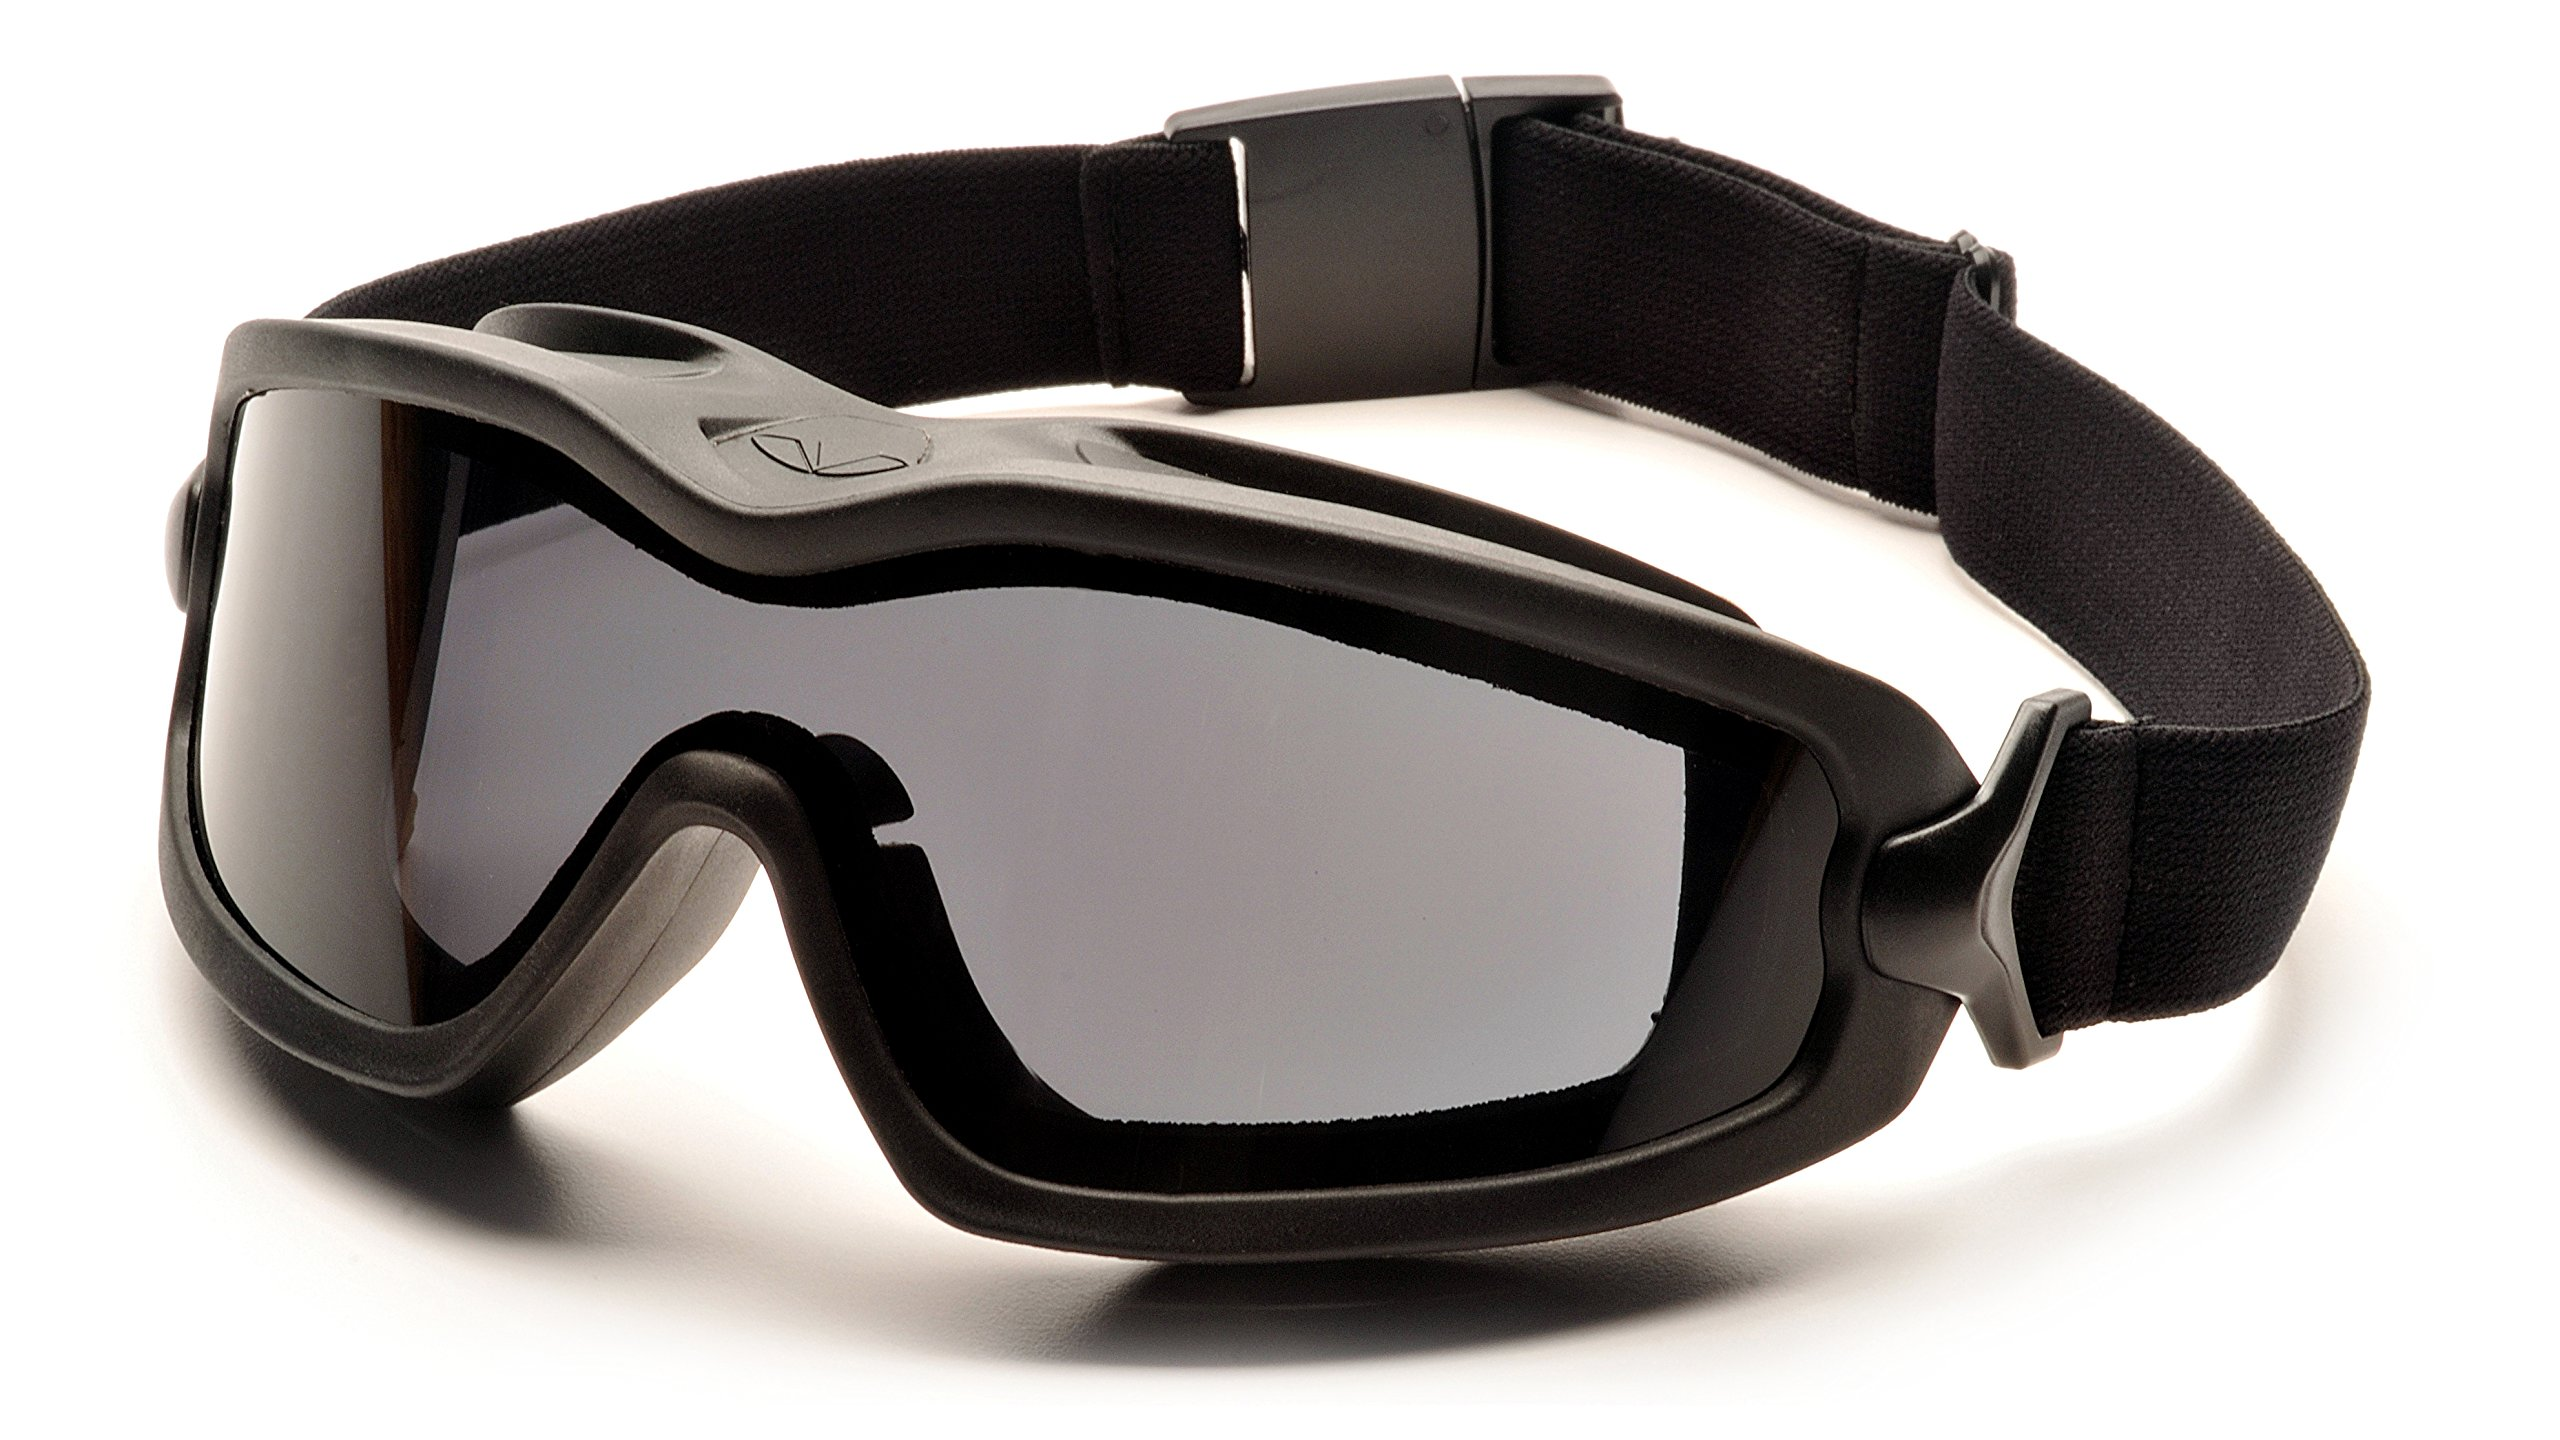 Pyramex V2G Safety Goggles with Adjustable Strap, Black Frame, Dual Gray H2X Anti-Fog Lens